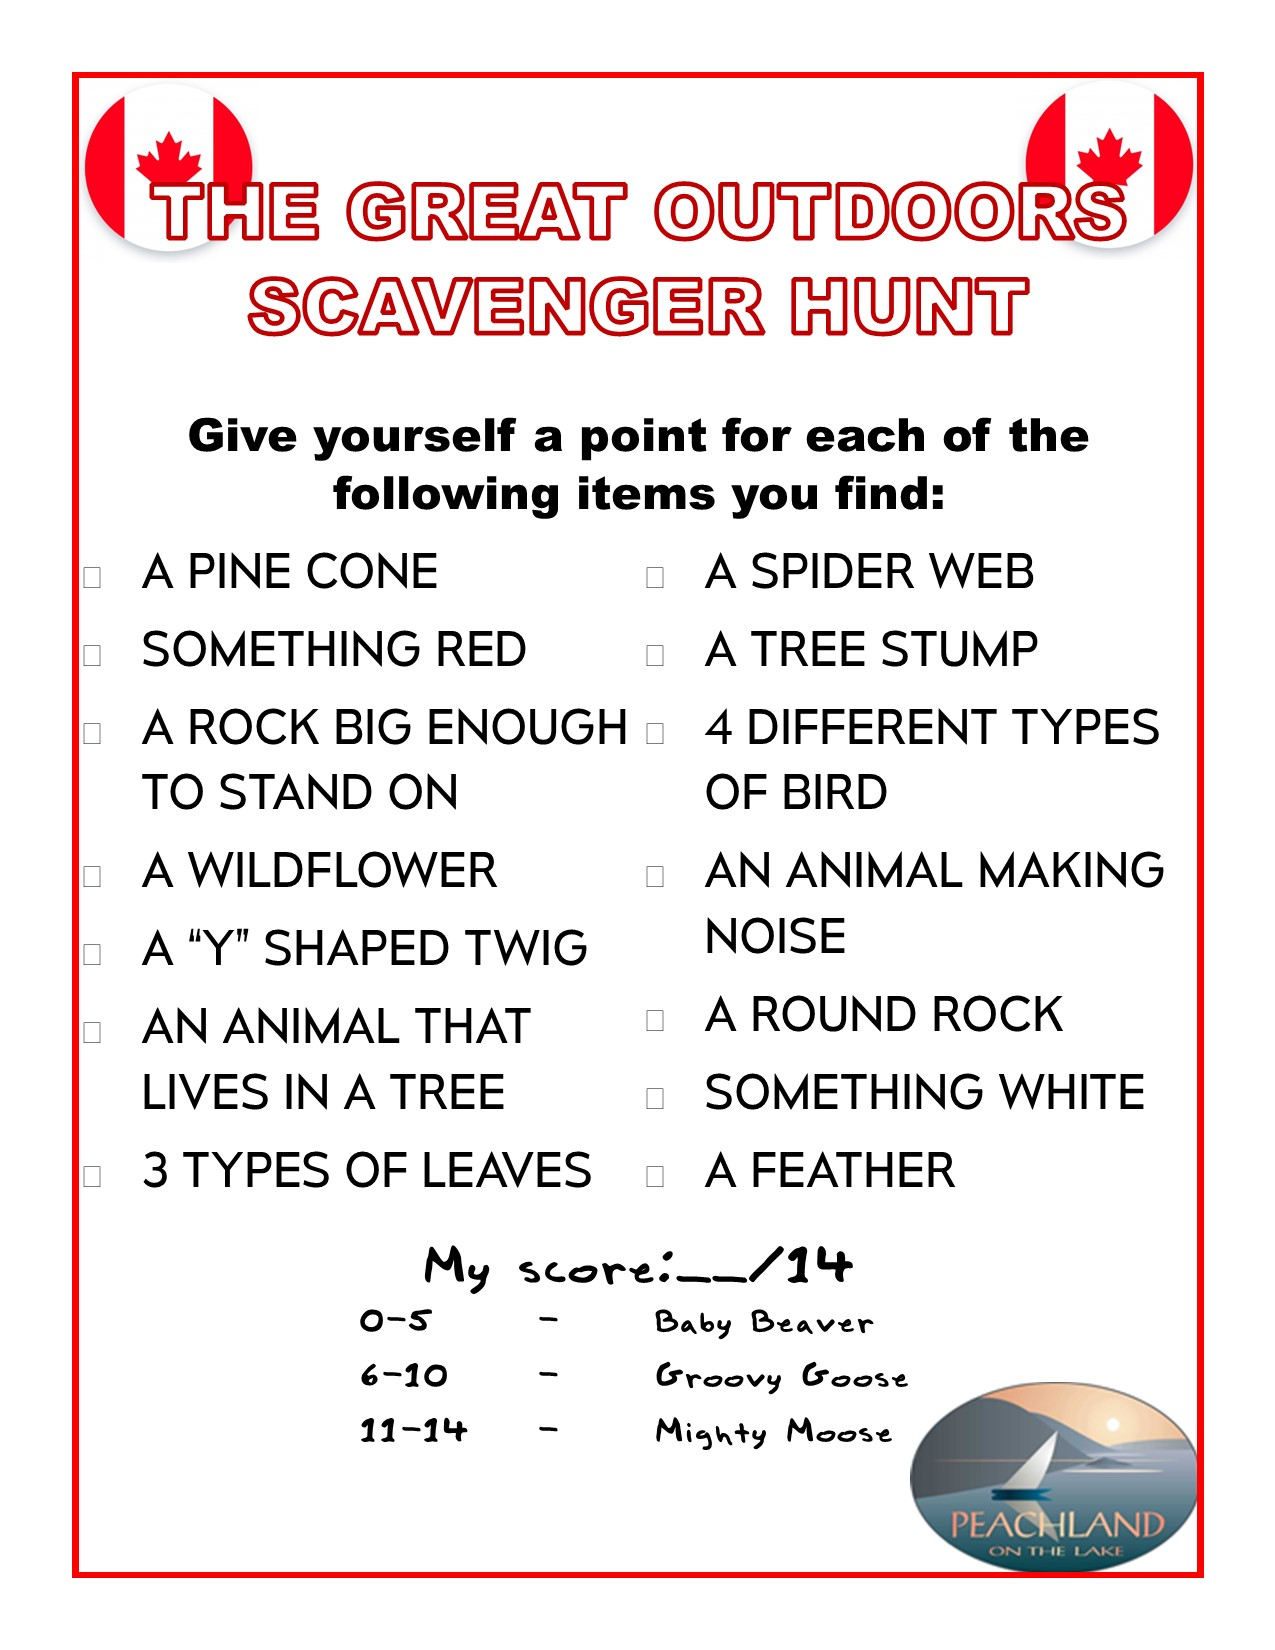 The Great Outdoors Scavenger Hunt